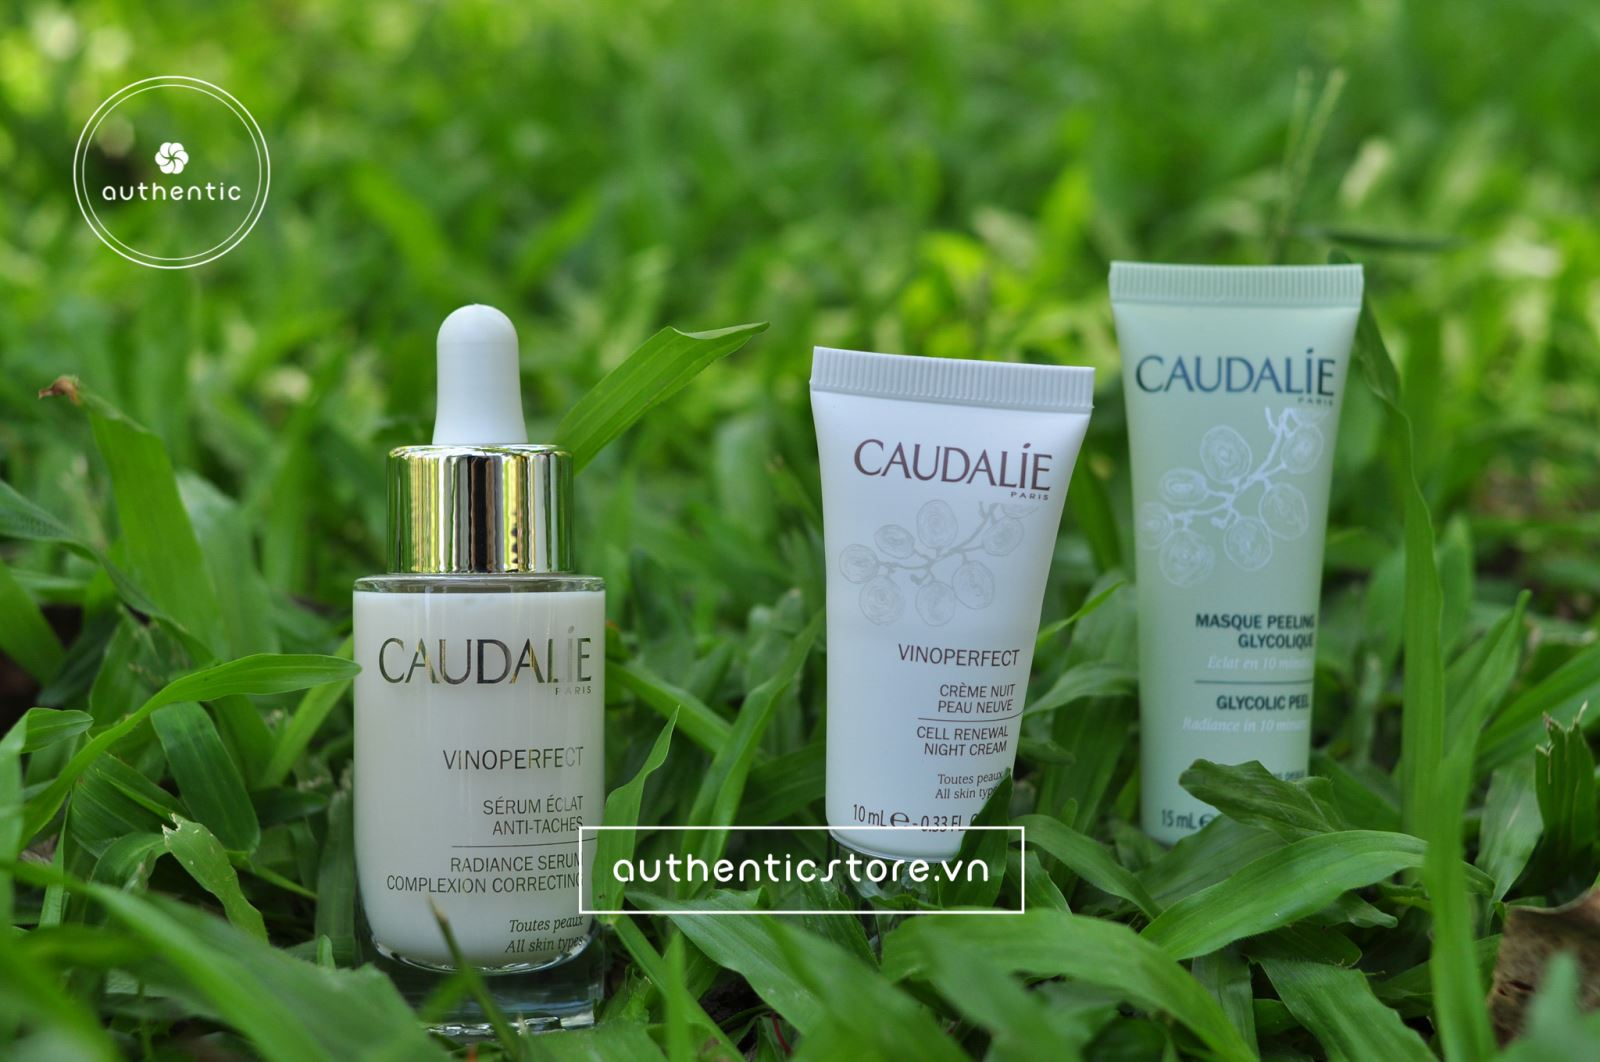 CAUDALIE VINOPERFECT GET GLOWING